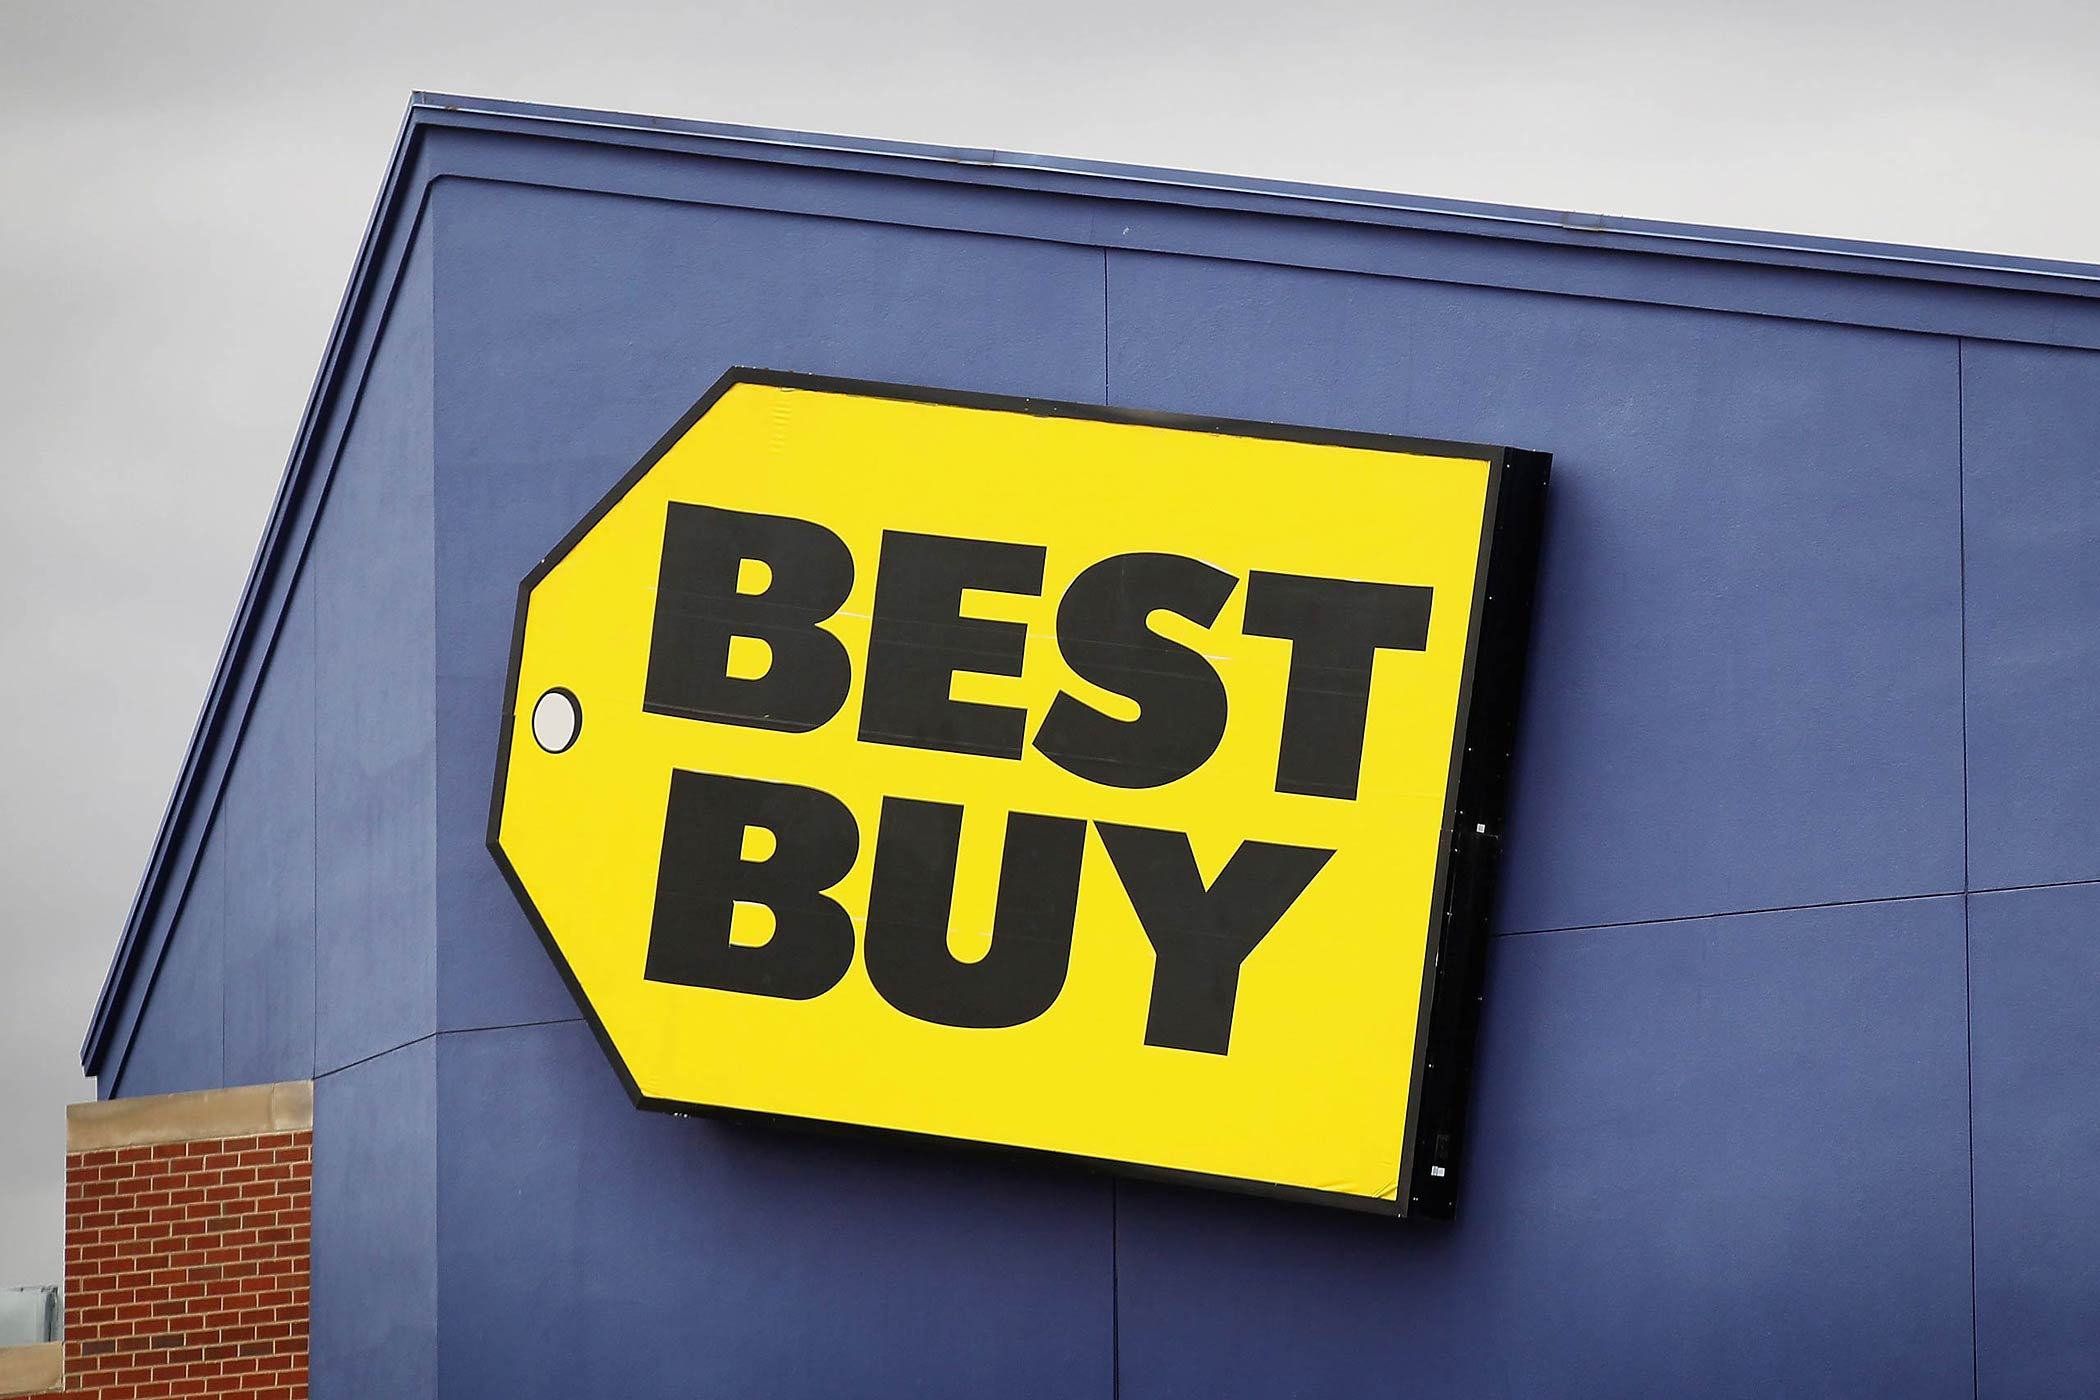 The Best Buy logo hangs above a store on April 16, 2012 in Chicago, Illinois.